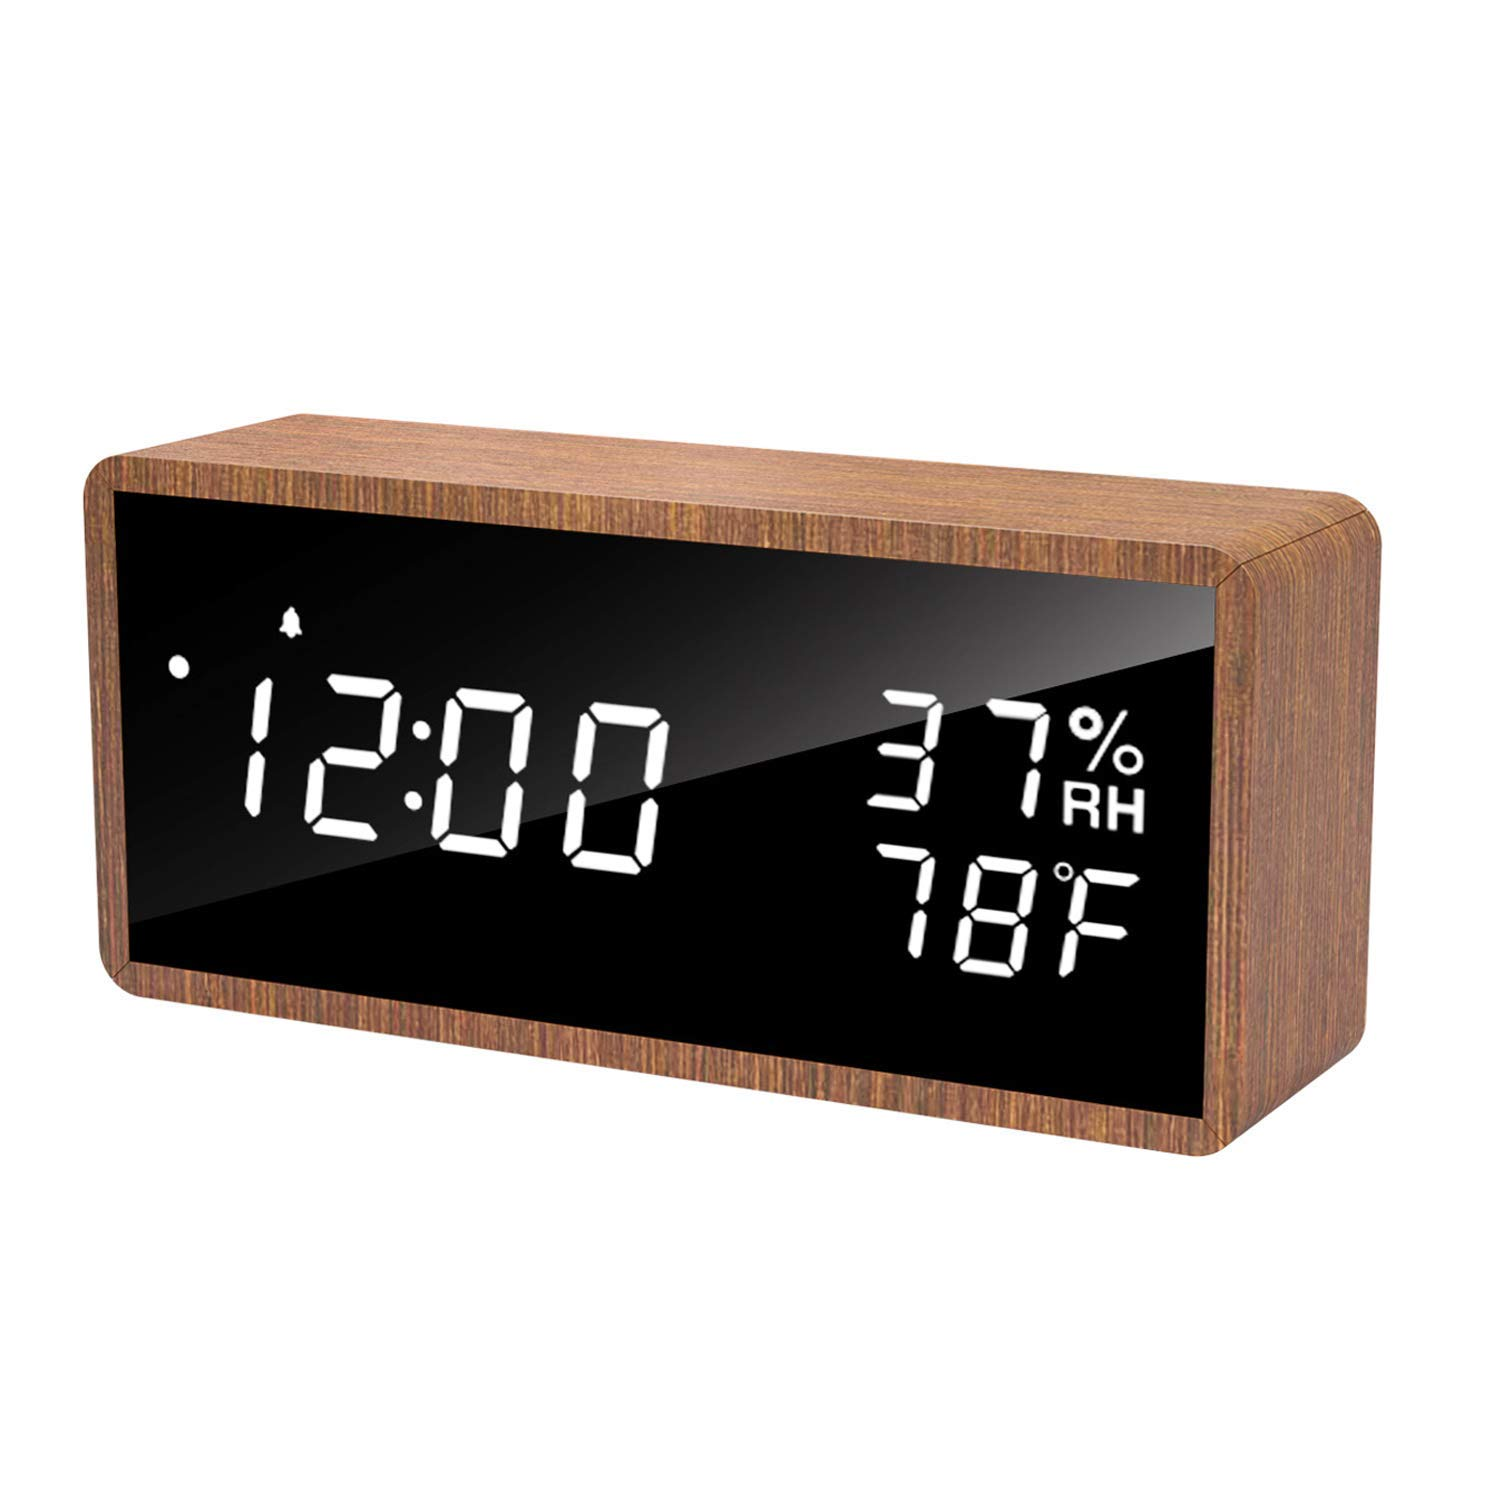 meross Digital Alarm Clock for Bedrooms, Real Wood, LED Display Desk Clock, Time Temperature Humidity, 3 Sets of Alarms, Adjustable Brightness, LED Sound Wake Up Function